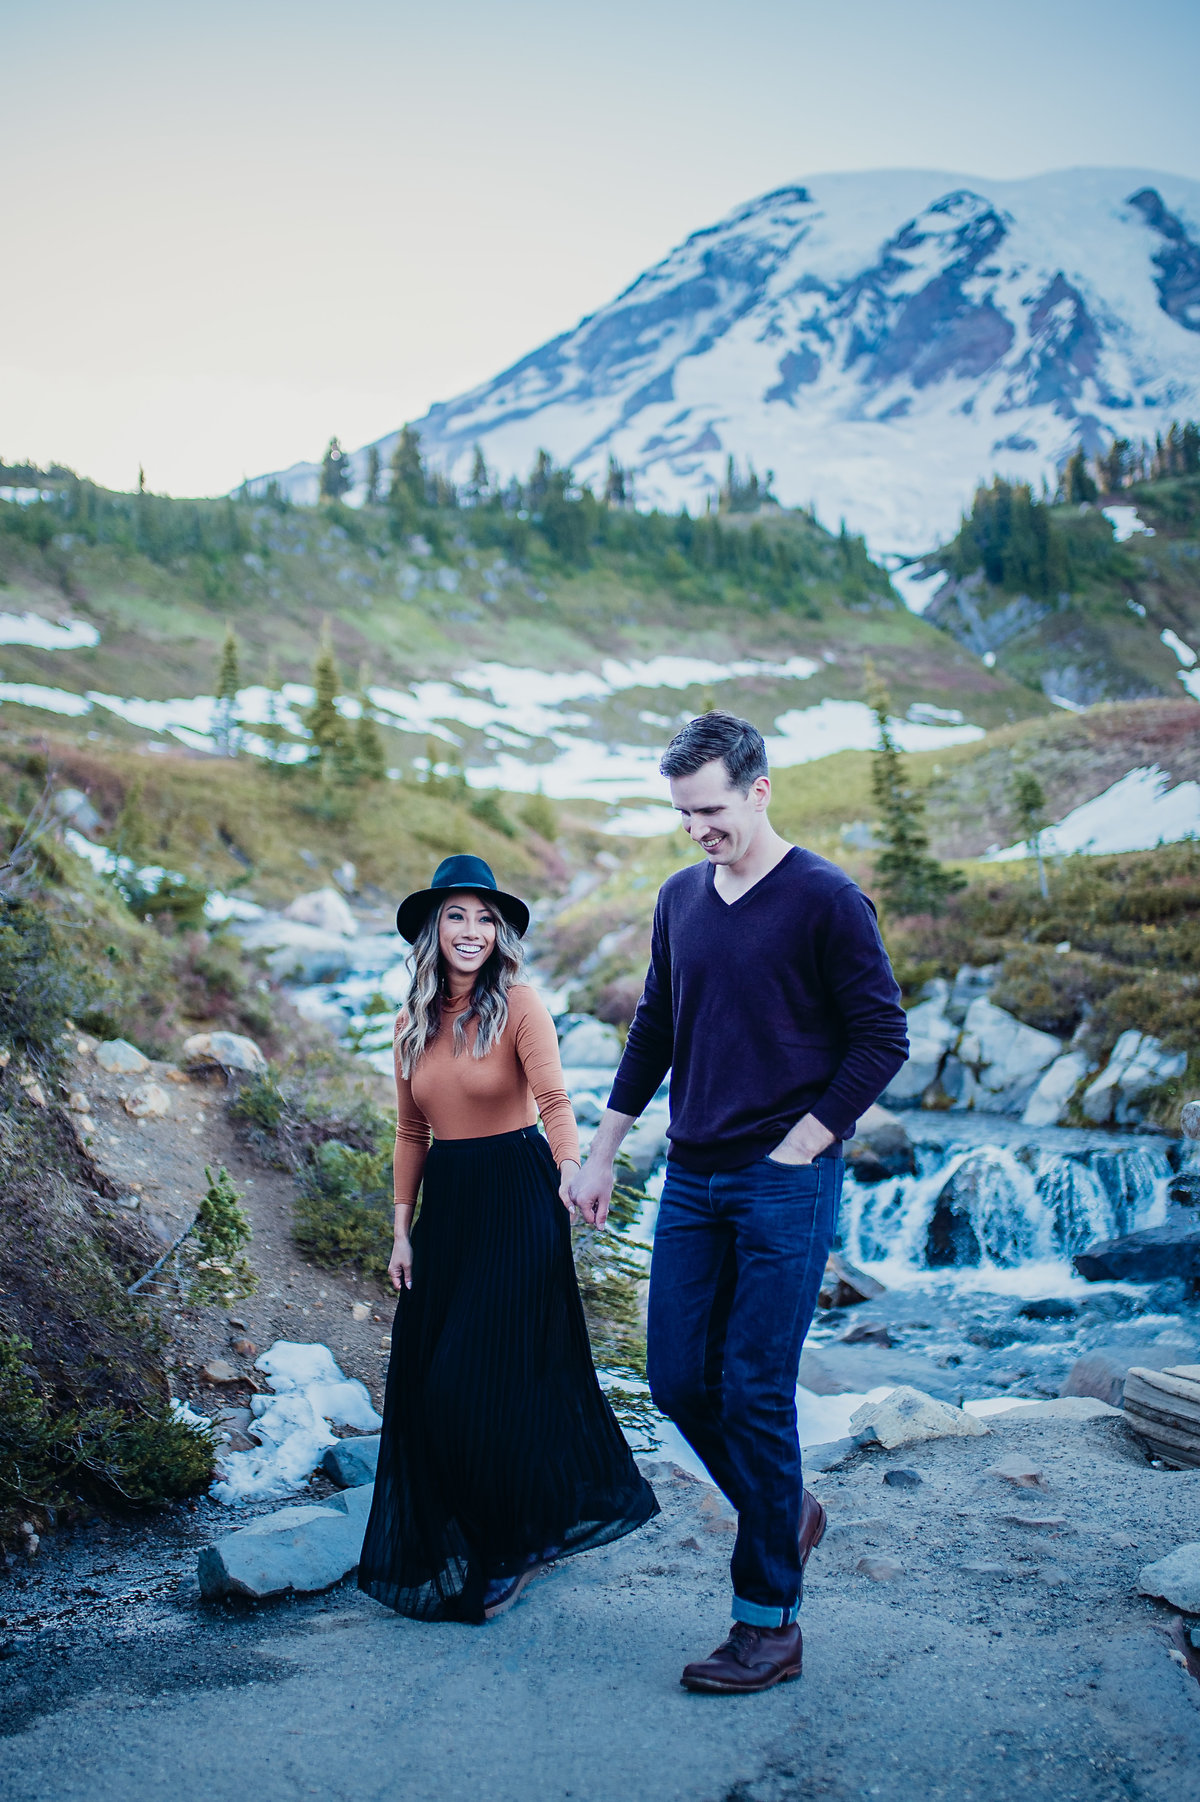 Engagement Session on Mount Rainier in Washington State